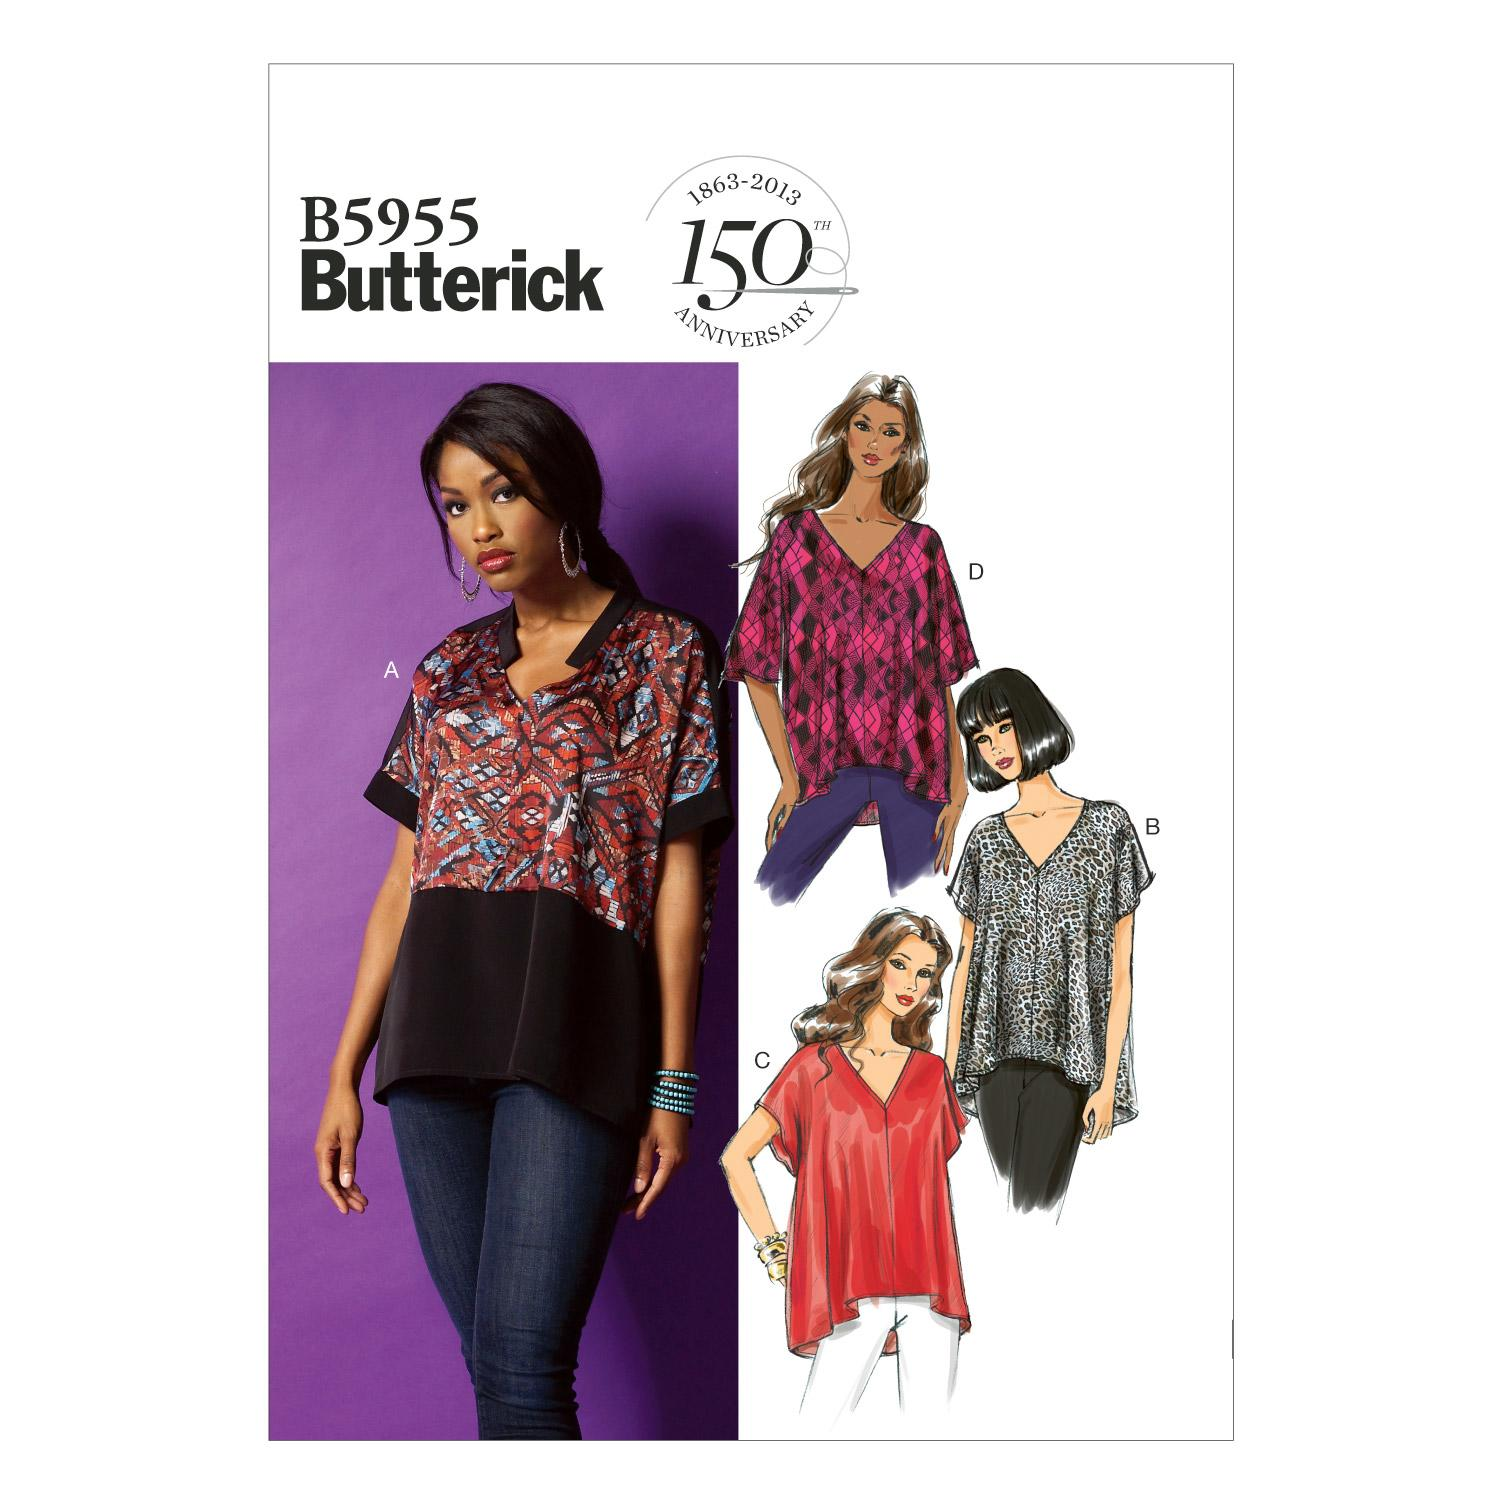 Butterick B5955 Misses' Top